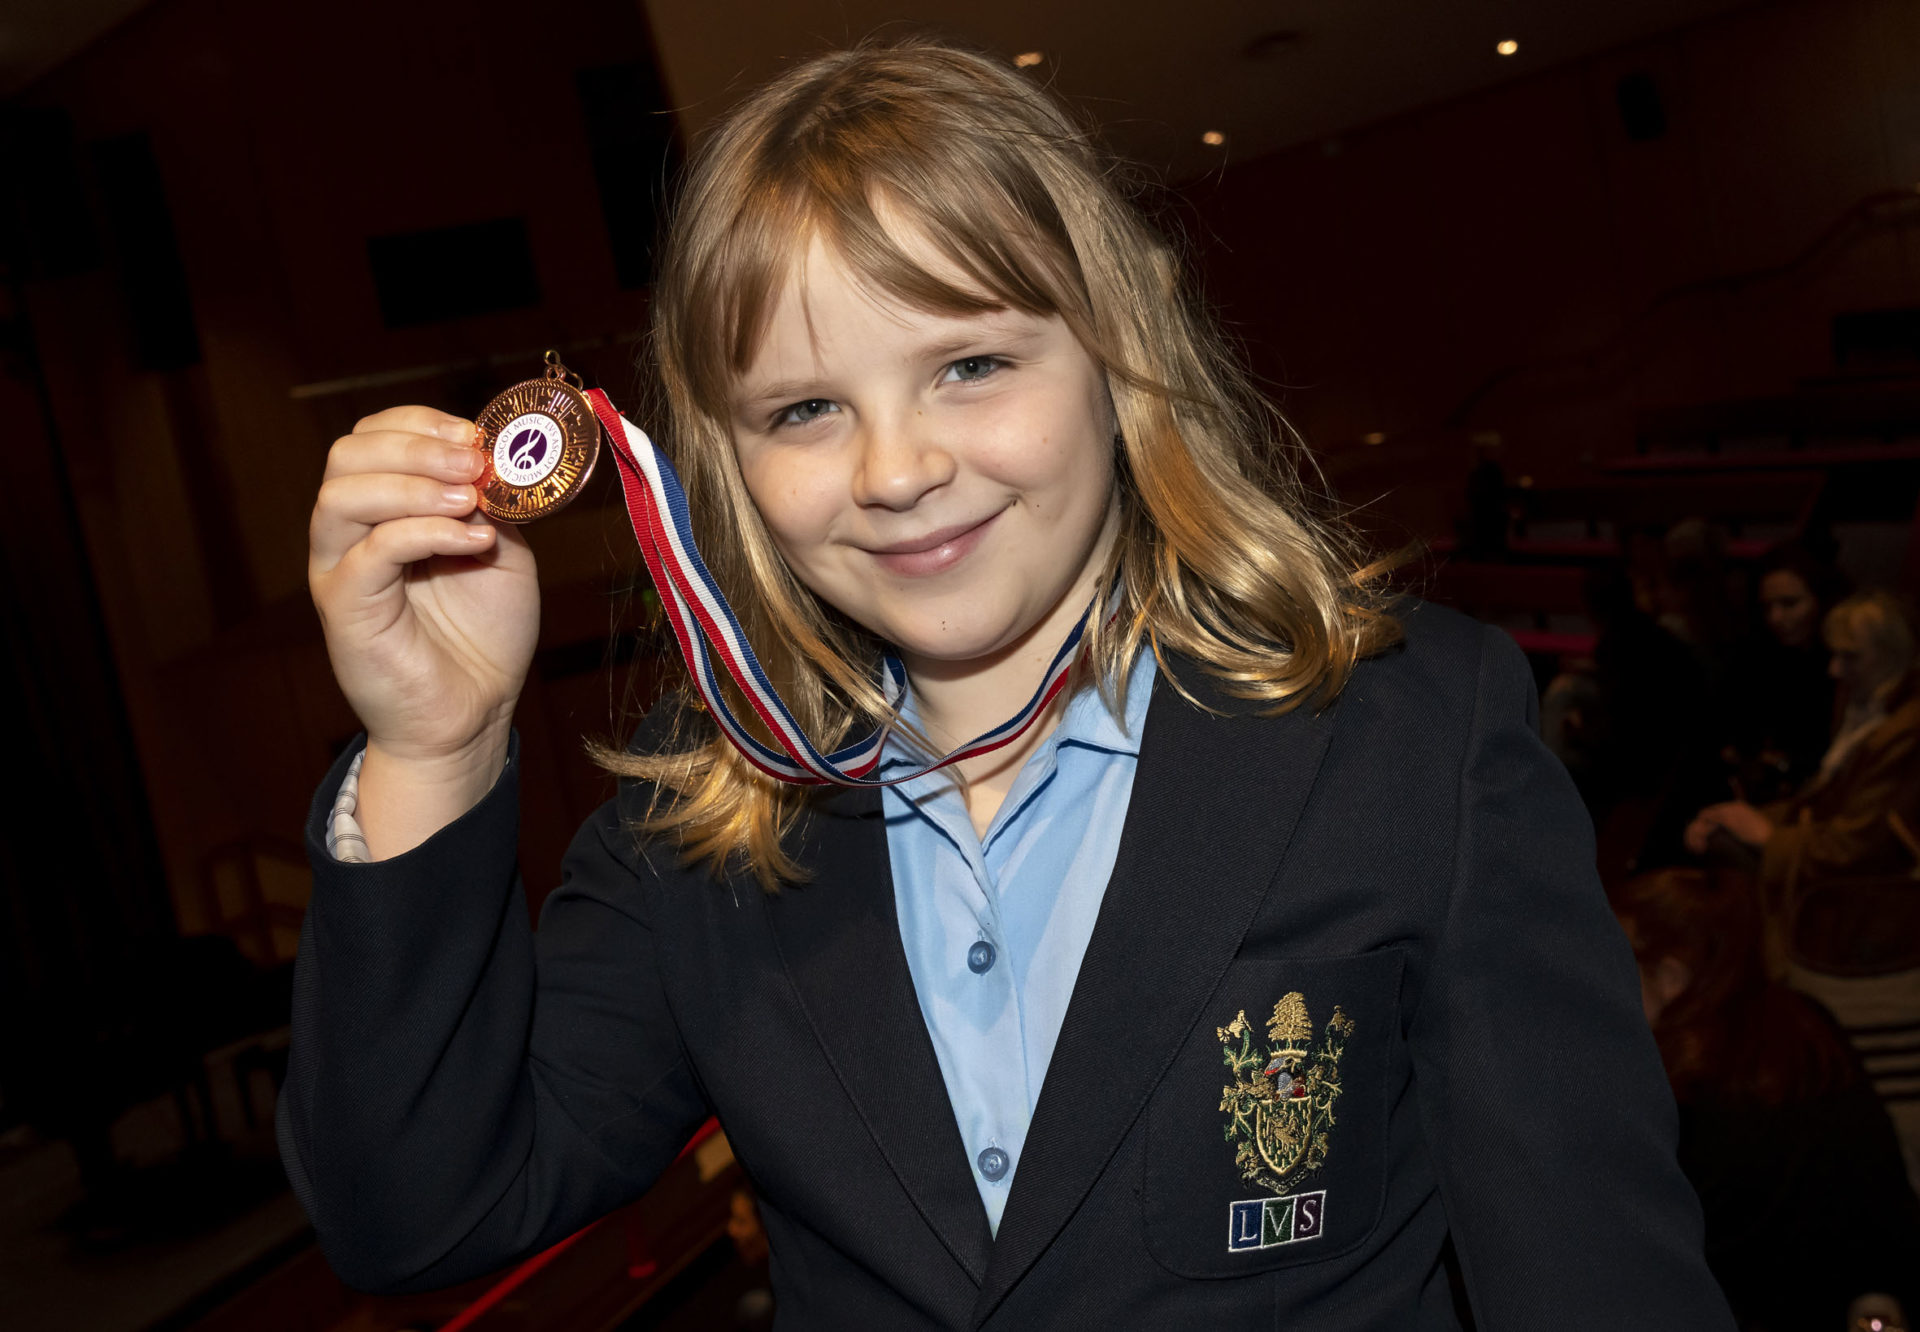 student proudly show her winning medal